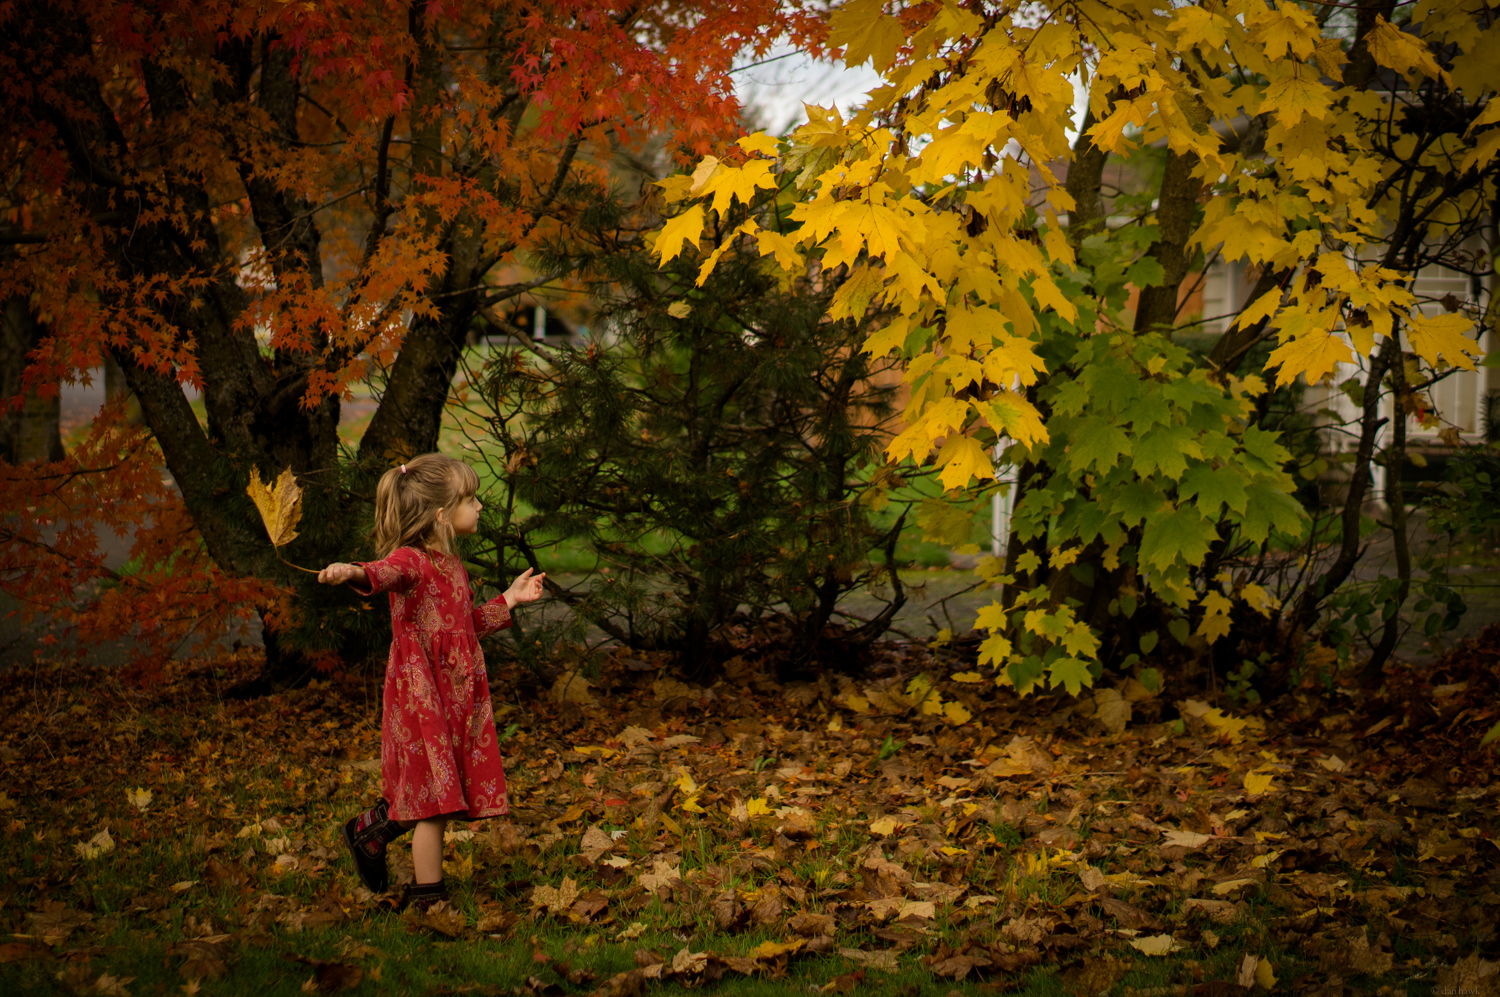 Leaves and Aisy | 365 Project | Nov 22nd, 2012